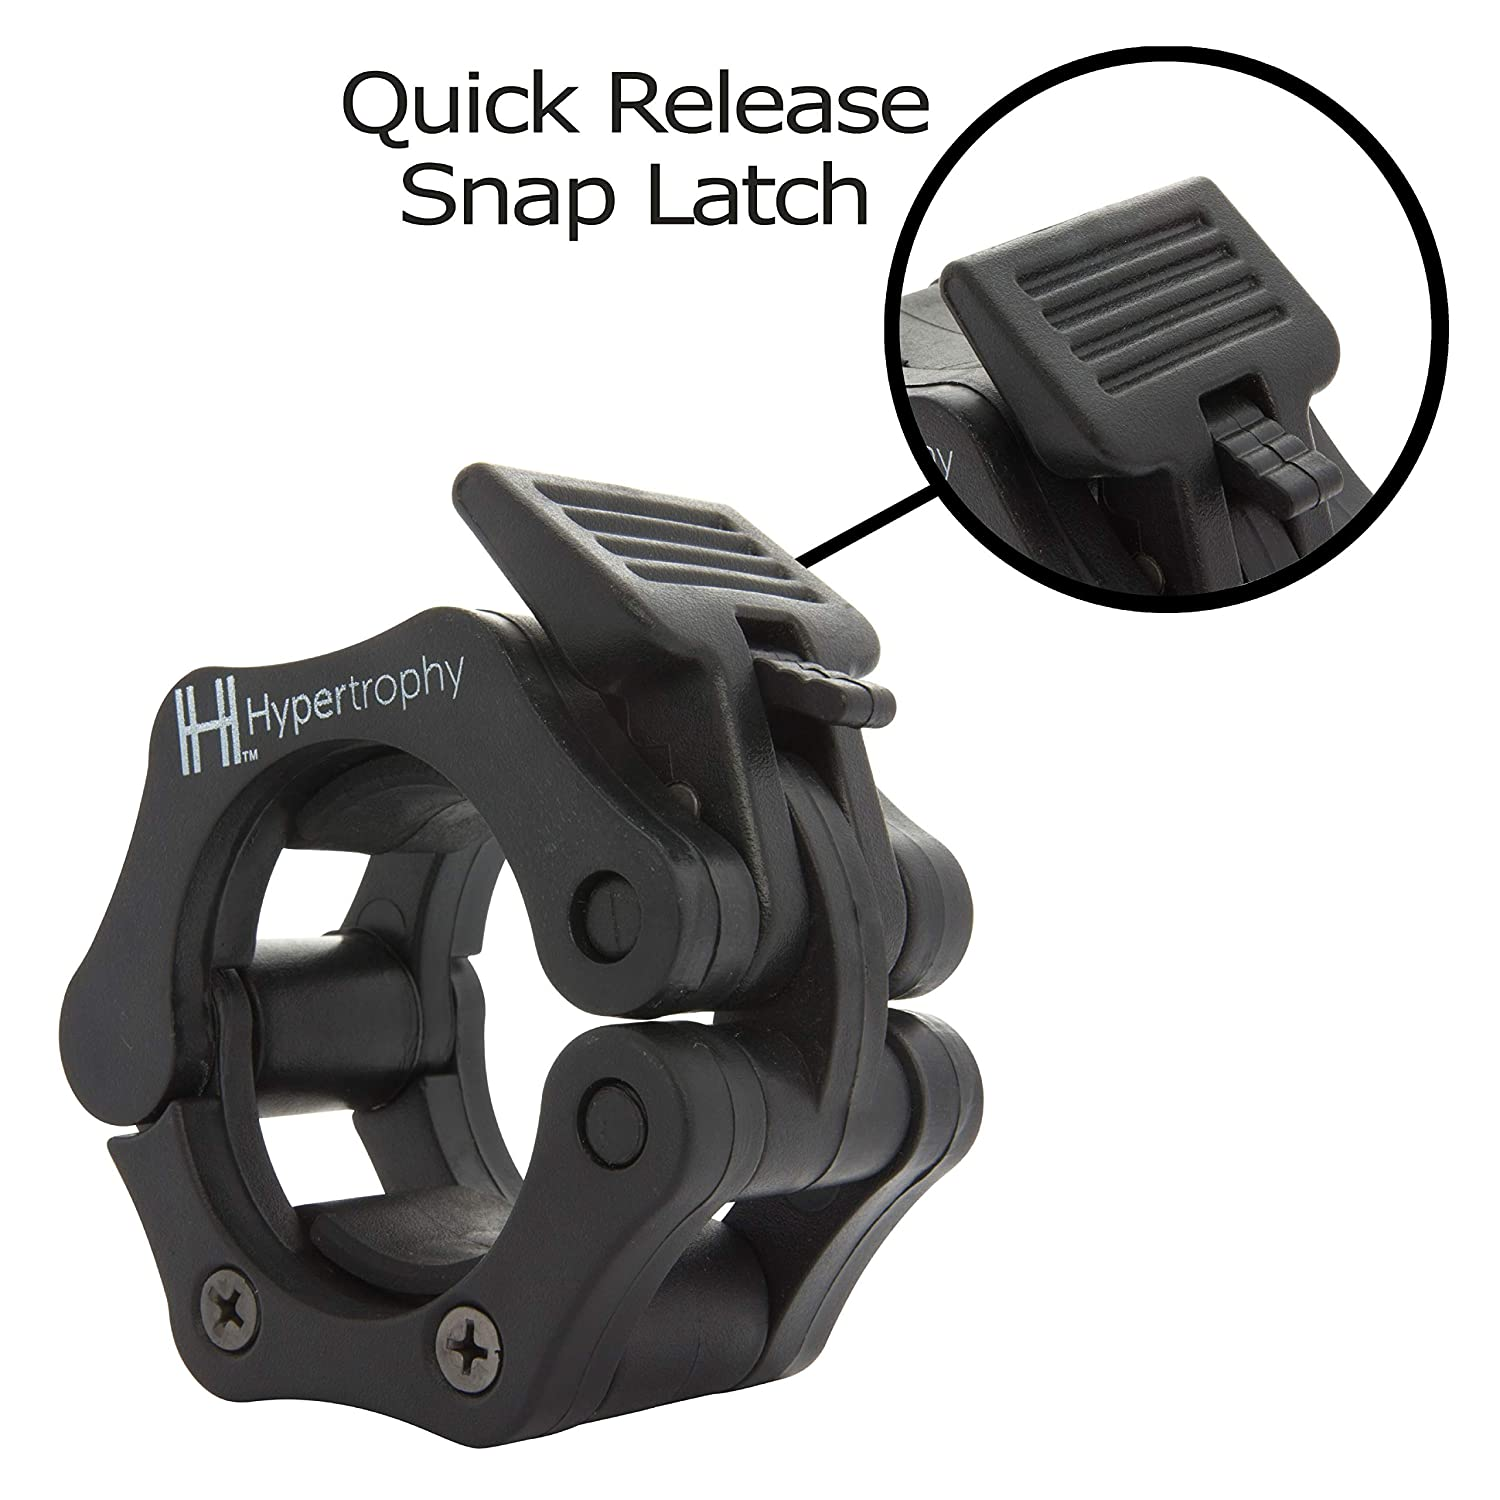 Quick Release Barbell Clamps Weightlifting Collars for Olympic Barbell Stop Sliding Plates with Snap Latch Technology Hypertrophy UK